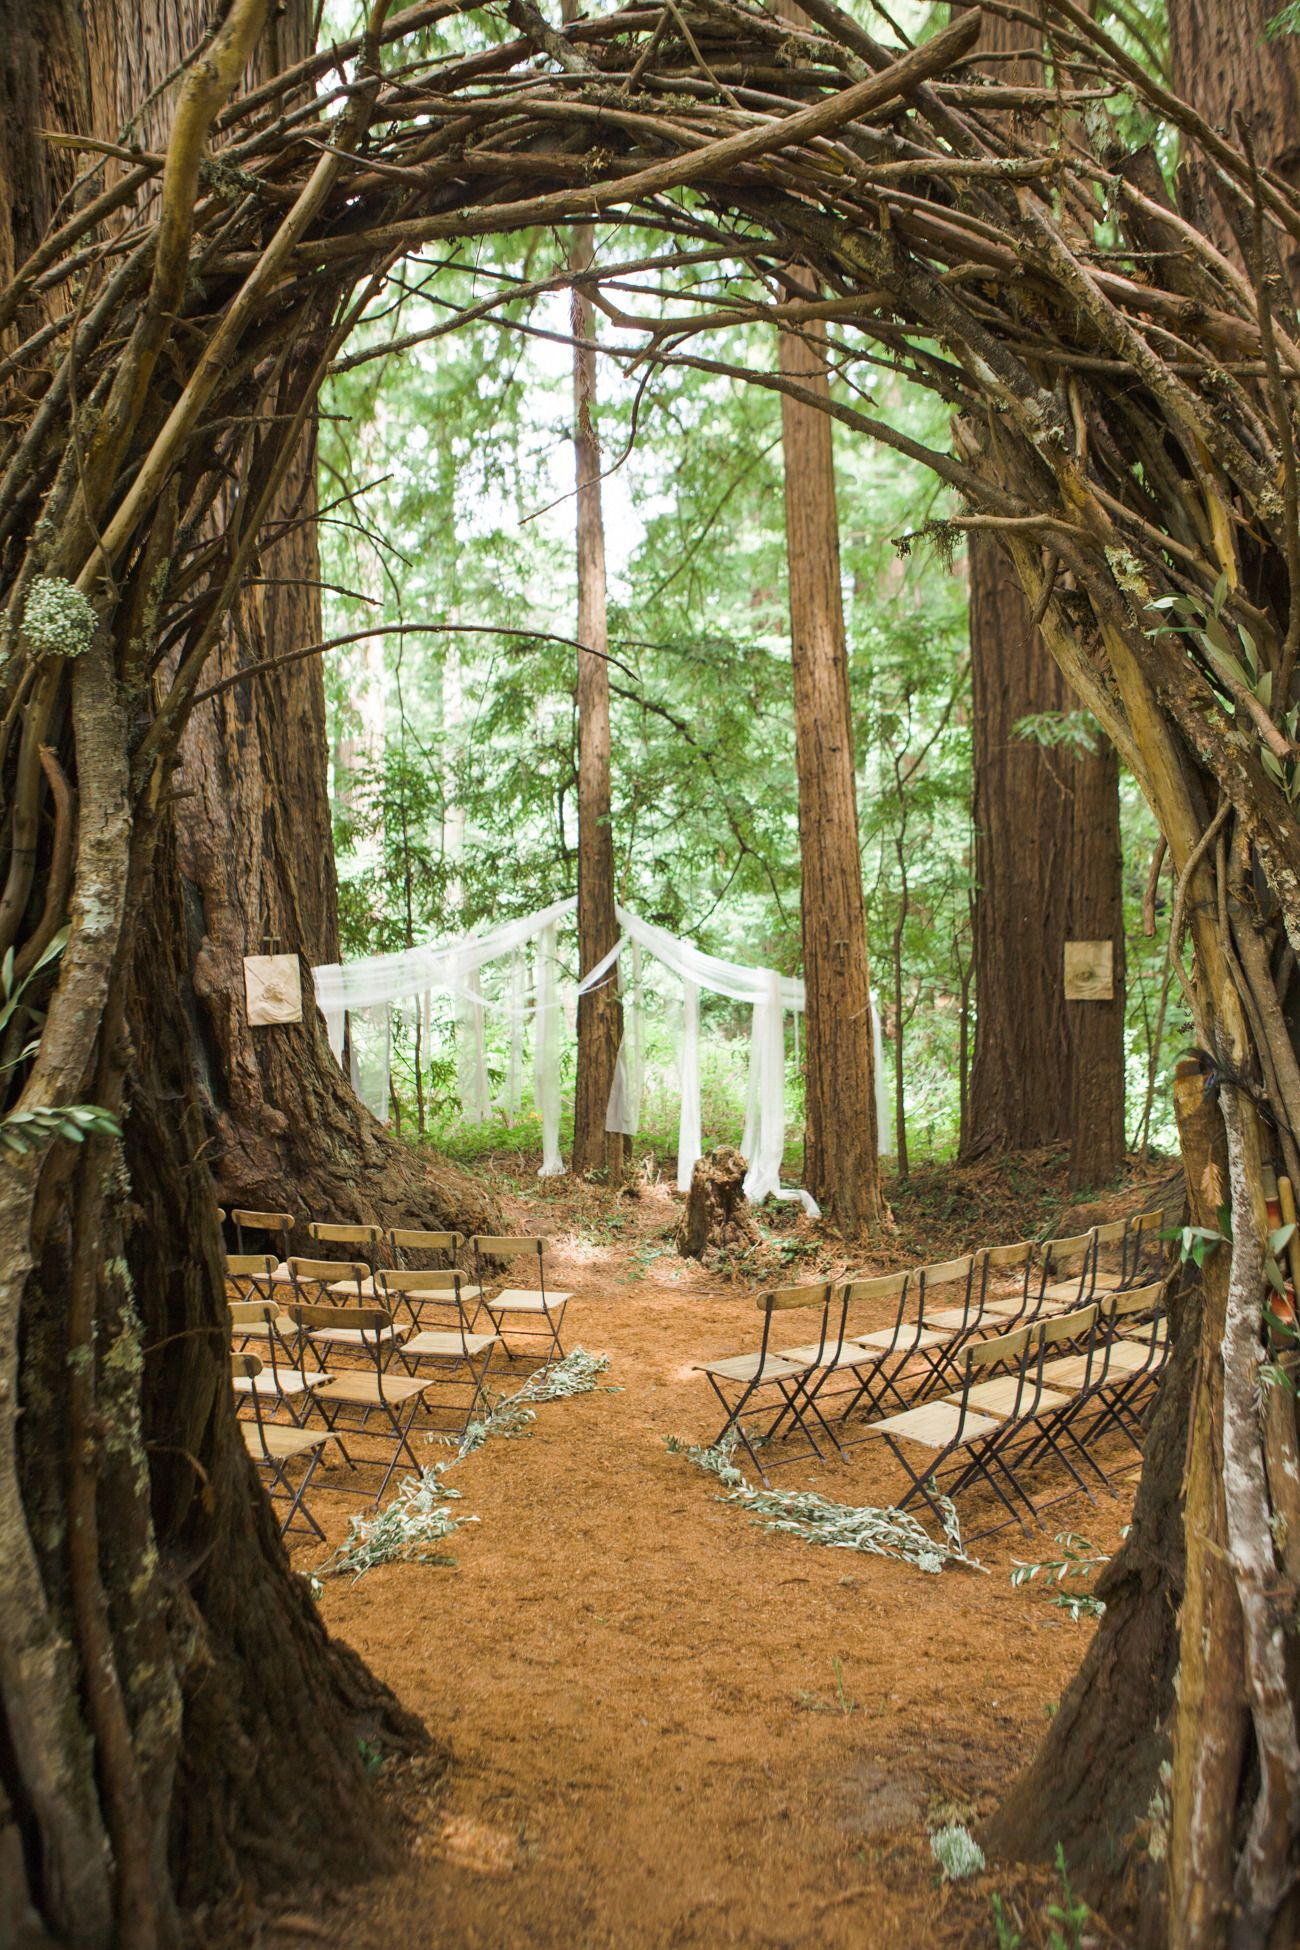 Garden wedding aisle decor  Romance in the Redwoods  A Forest Wedding  Rustykalny Przyjęcia i